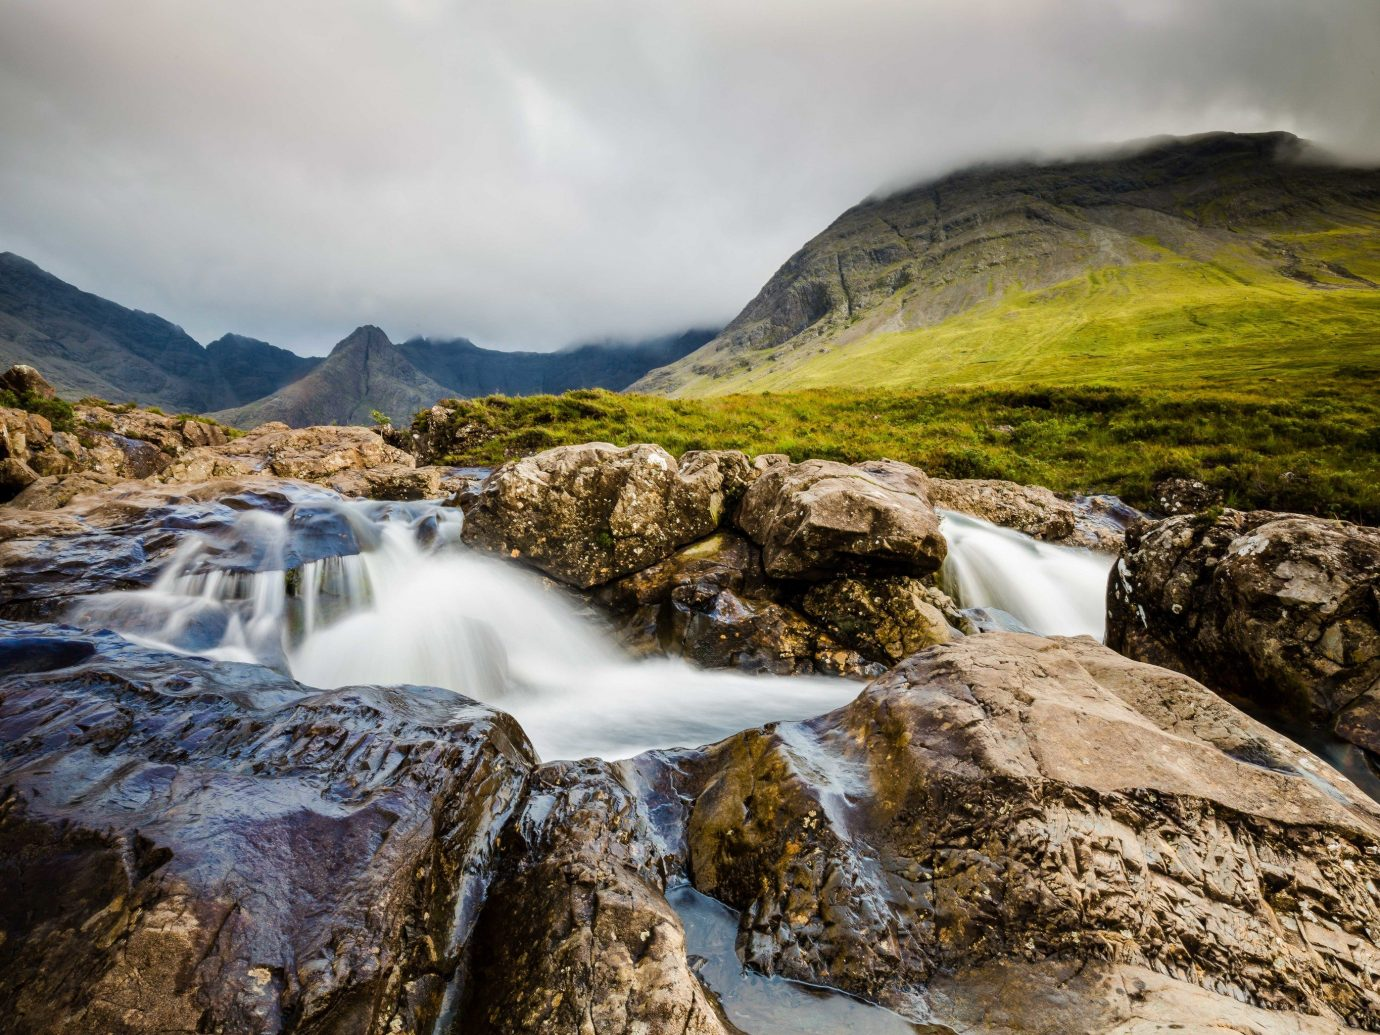 Trip Ideas Nature rock outdoor mountain sky Waterfall water mountainous landforms rocky wilderness highland stream water feature watercourse landscape River fell hill loch lake district rapid tree cloud hillside